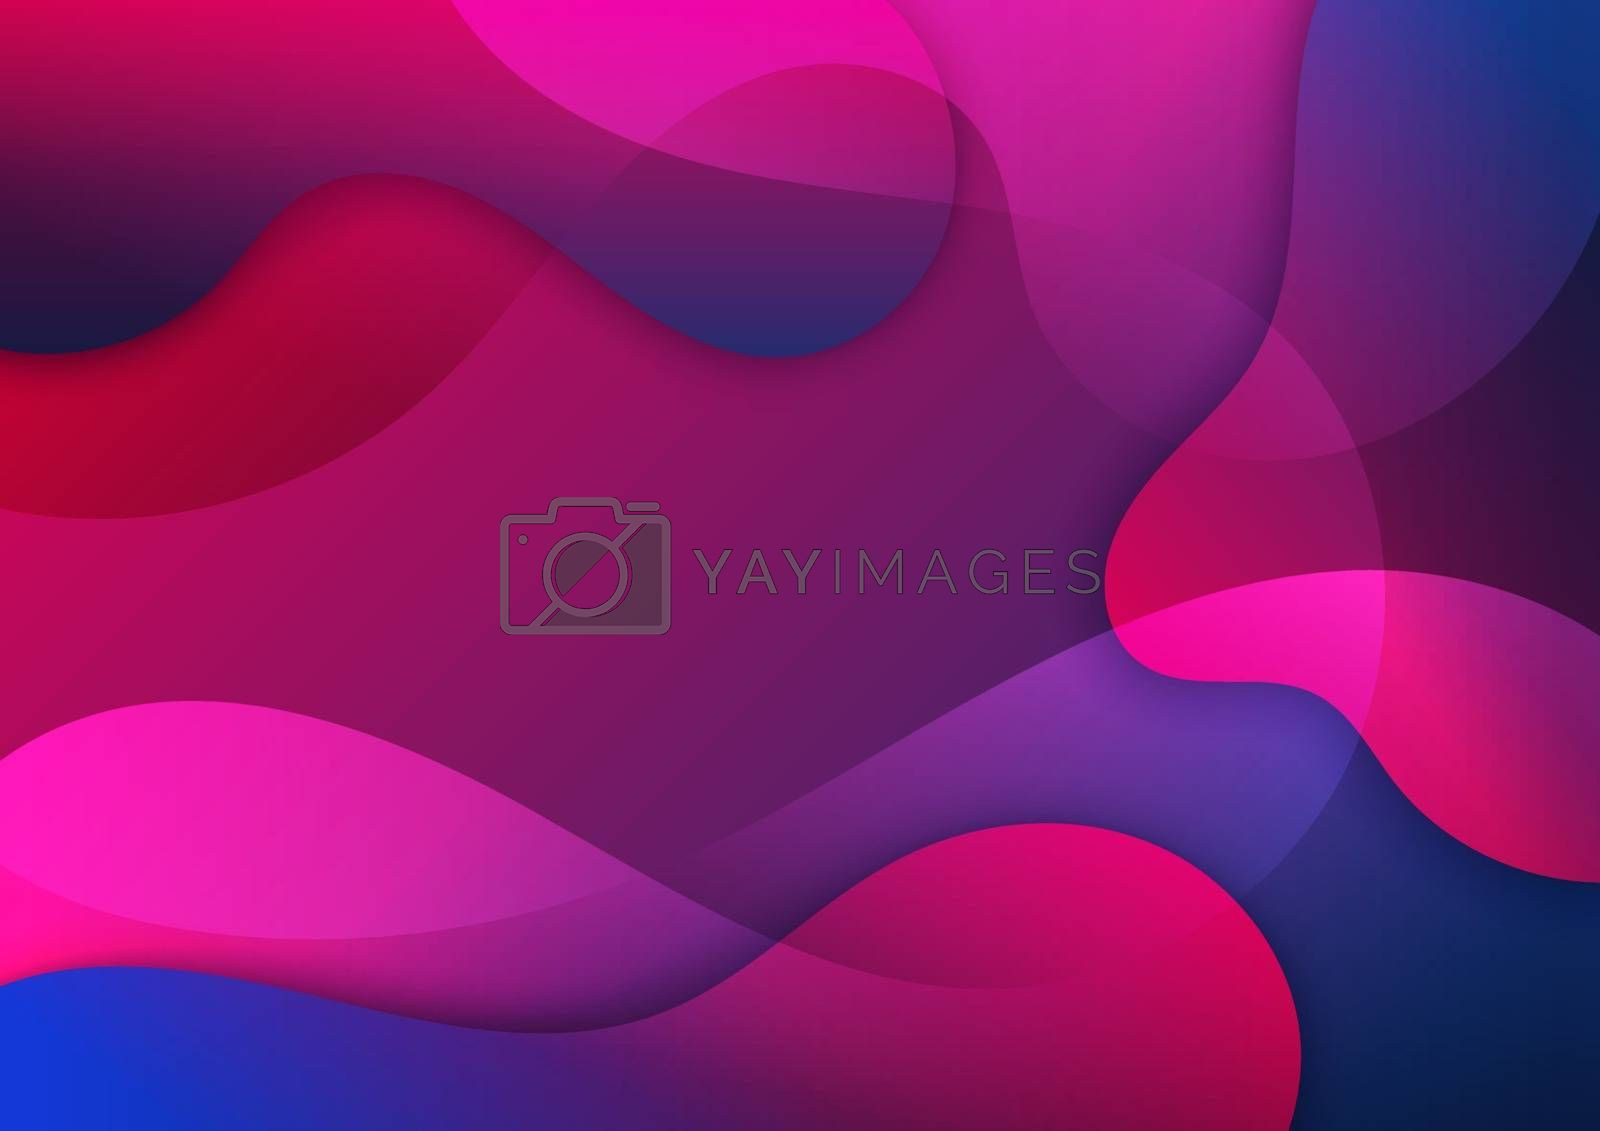 Abstract pink and blue gradient waves shape background. Vector illustration